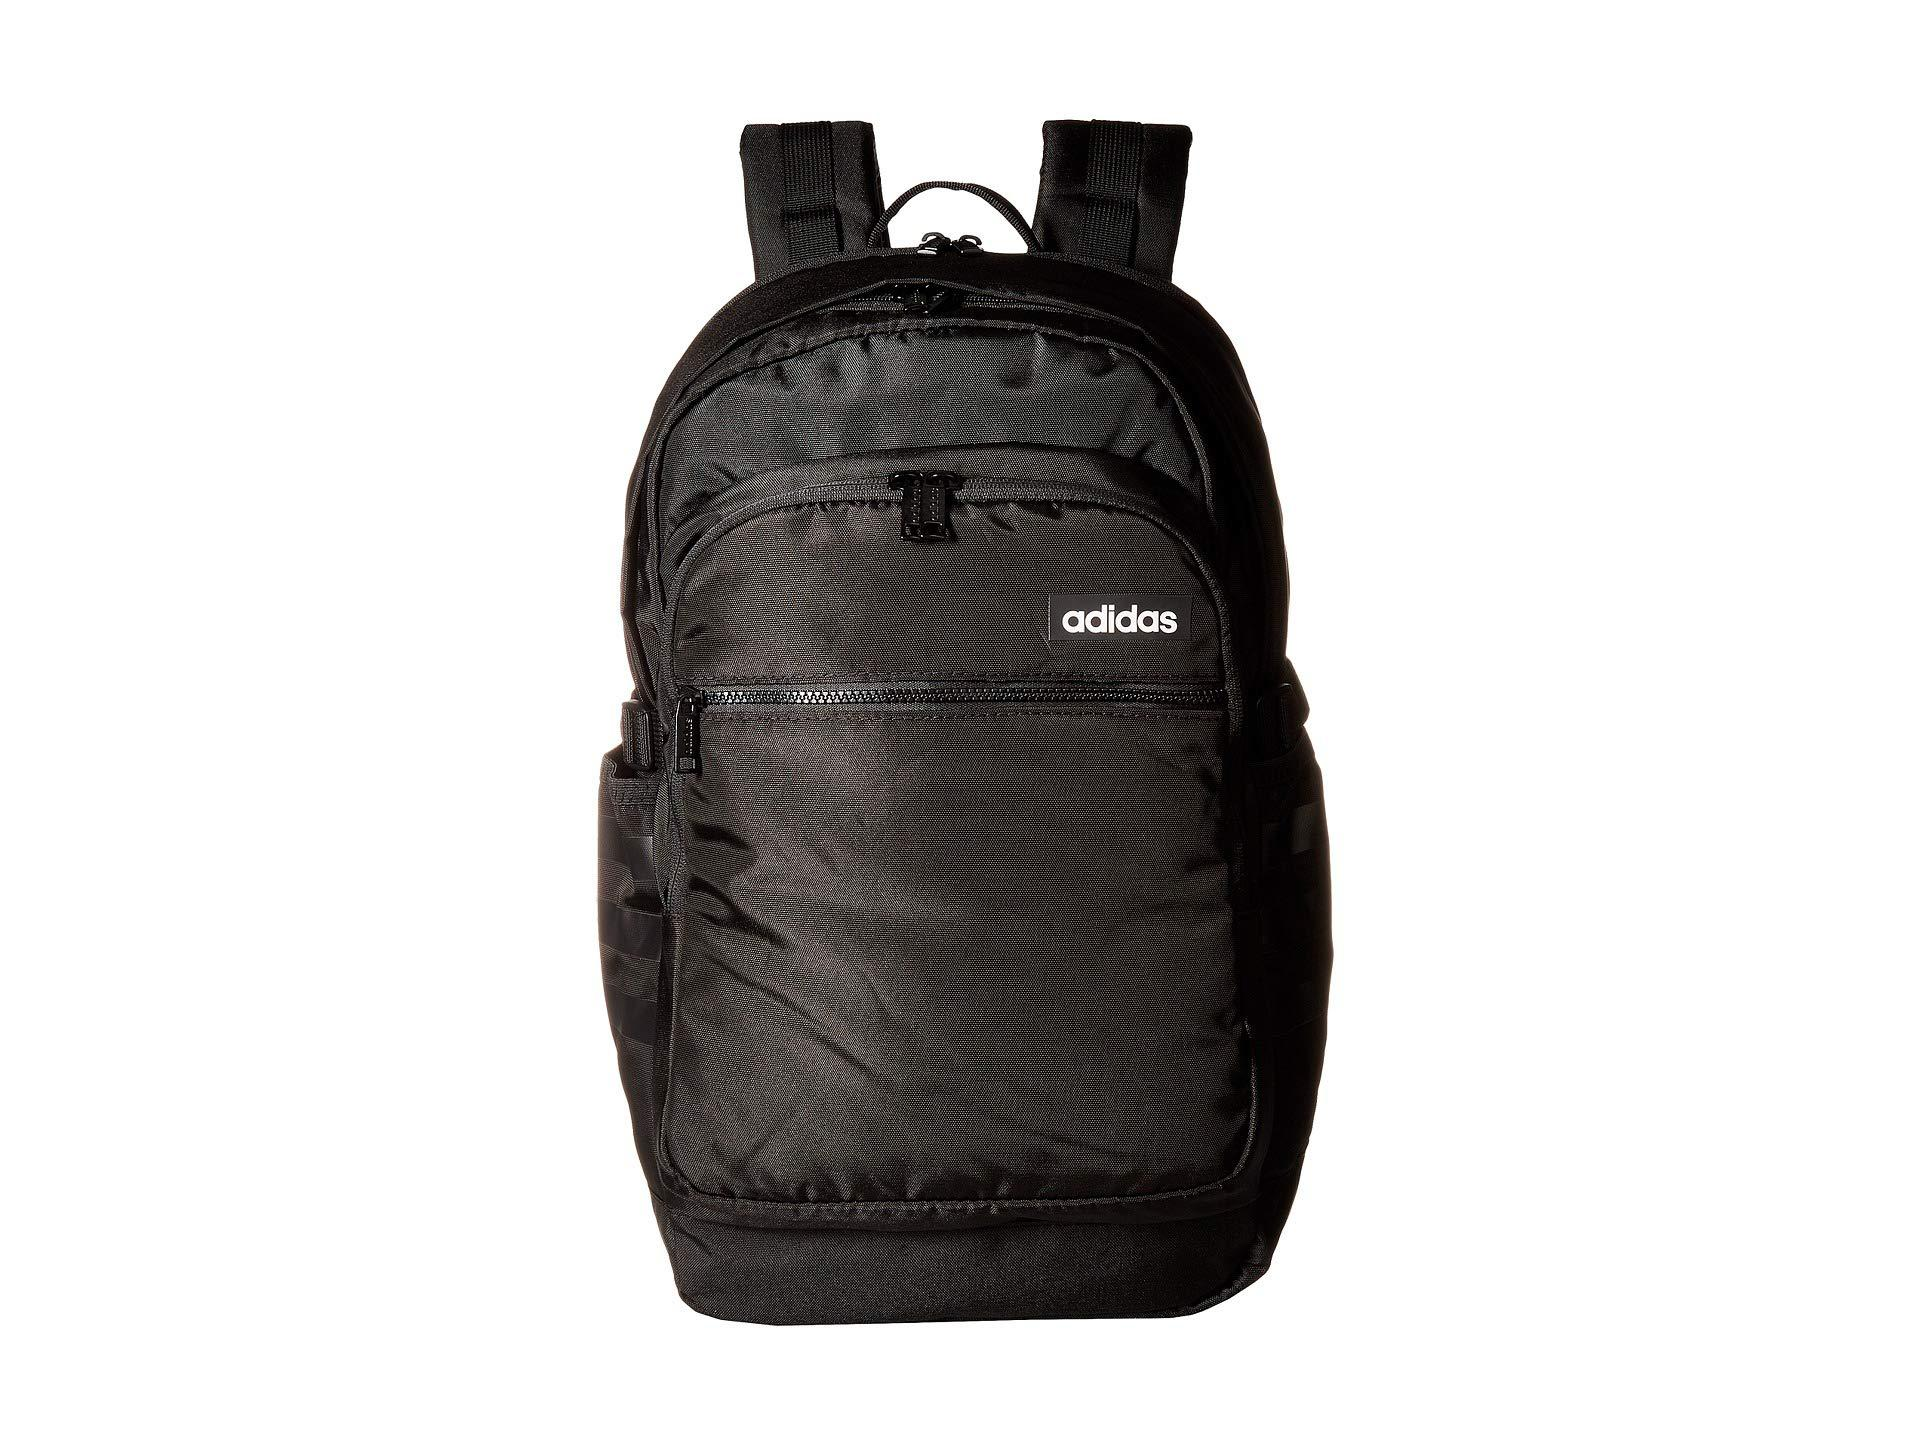 Lyst - adidas Core Advantage Backpack (black) Backpack Bags in Black ... f410d83a9ef8e